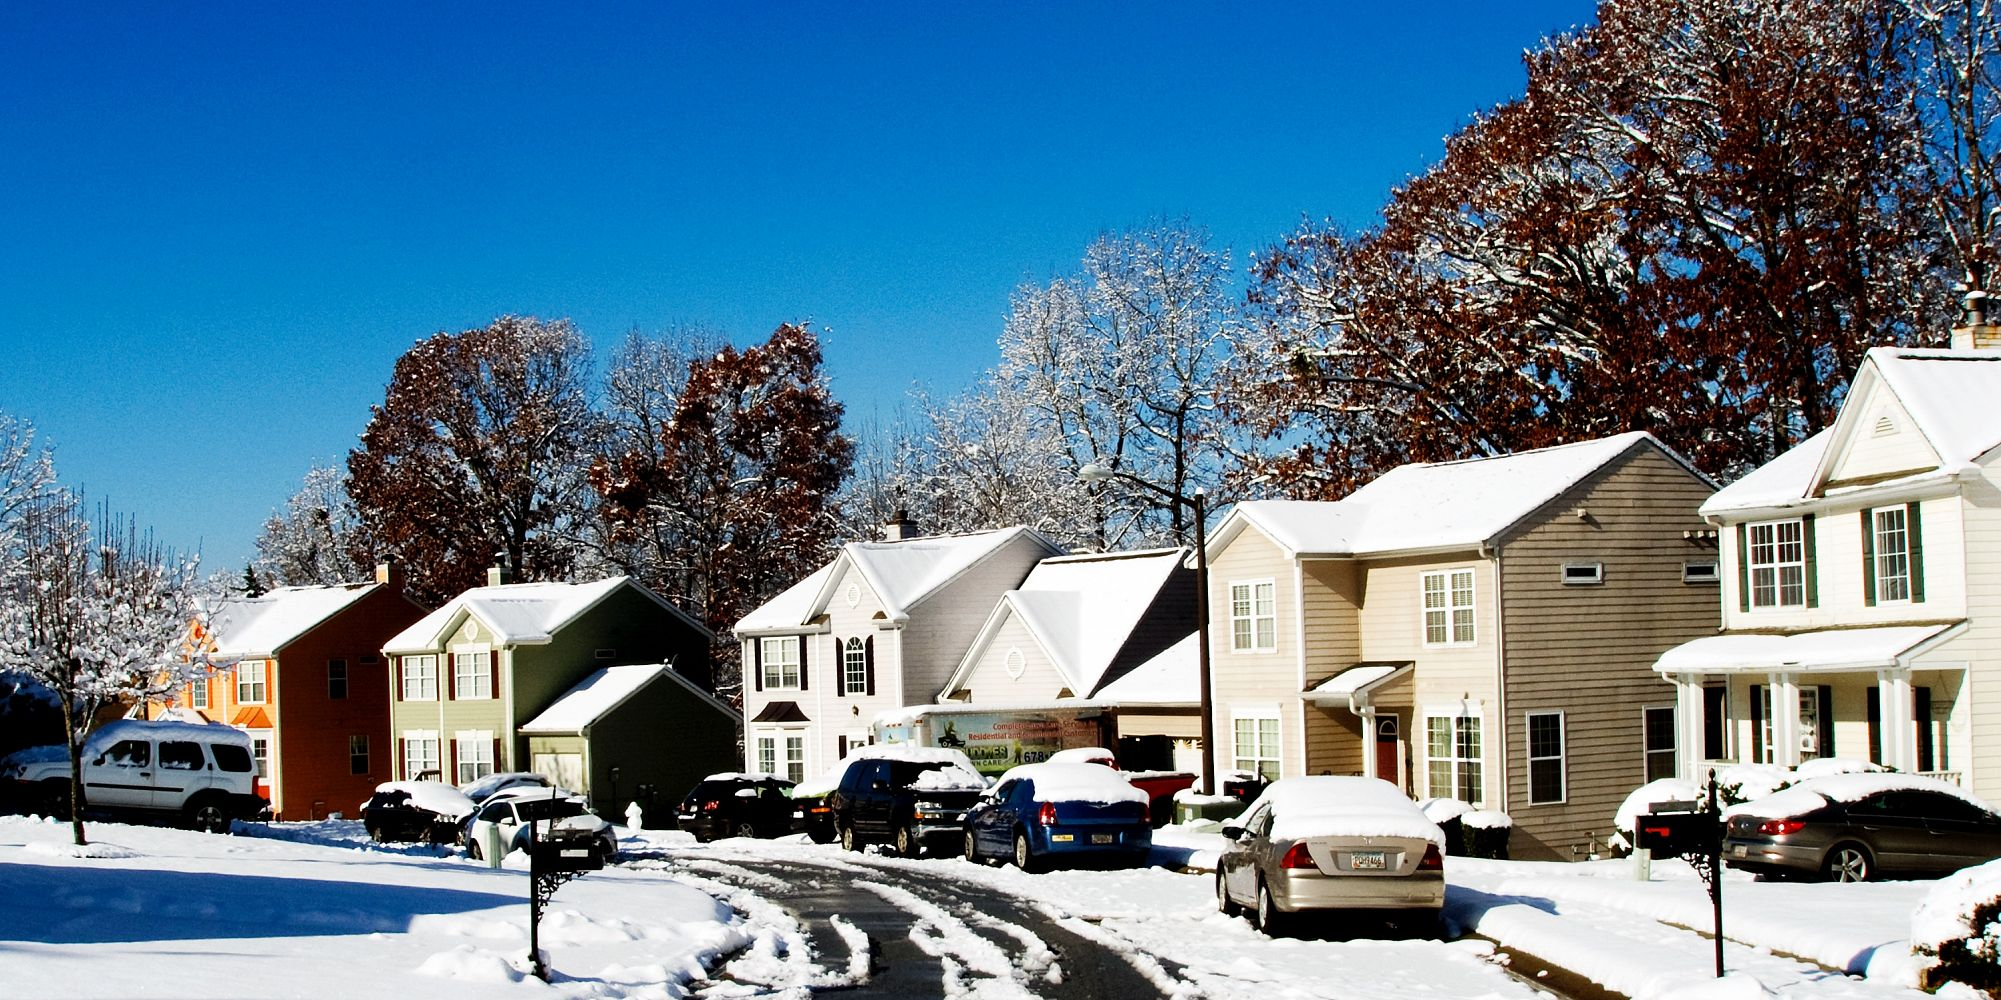 8 tips to protect your home when you go on vacation in the winter